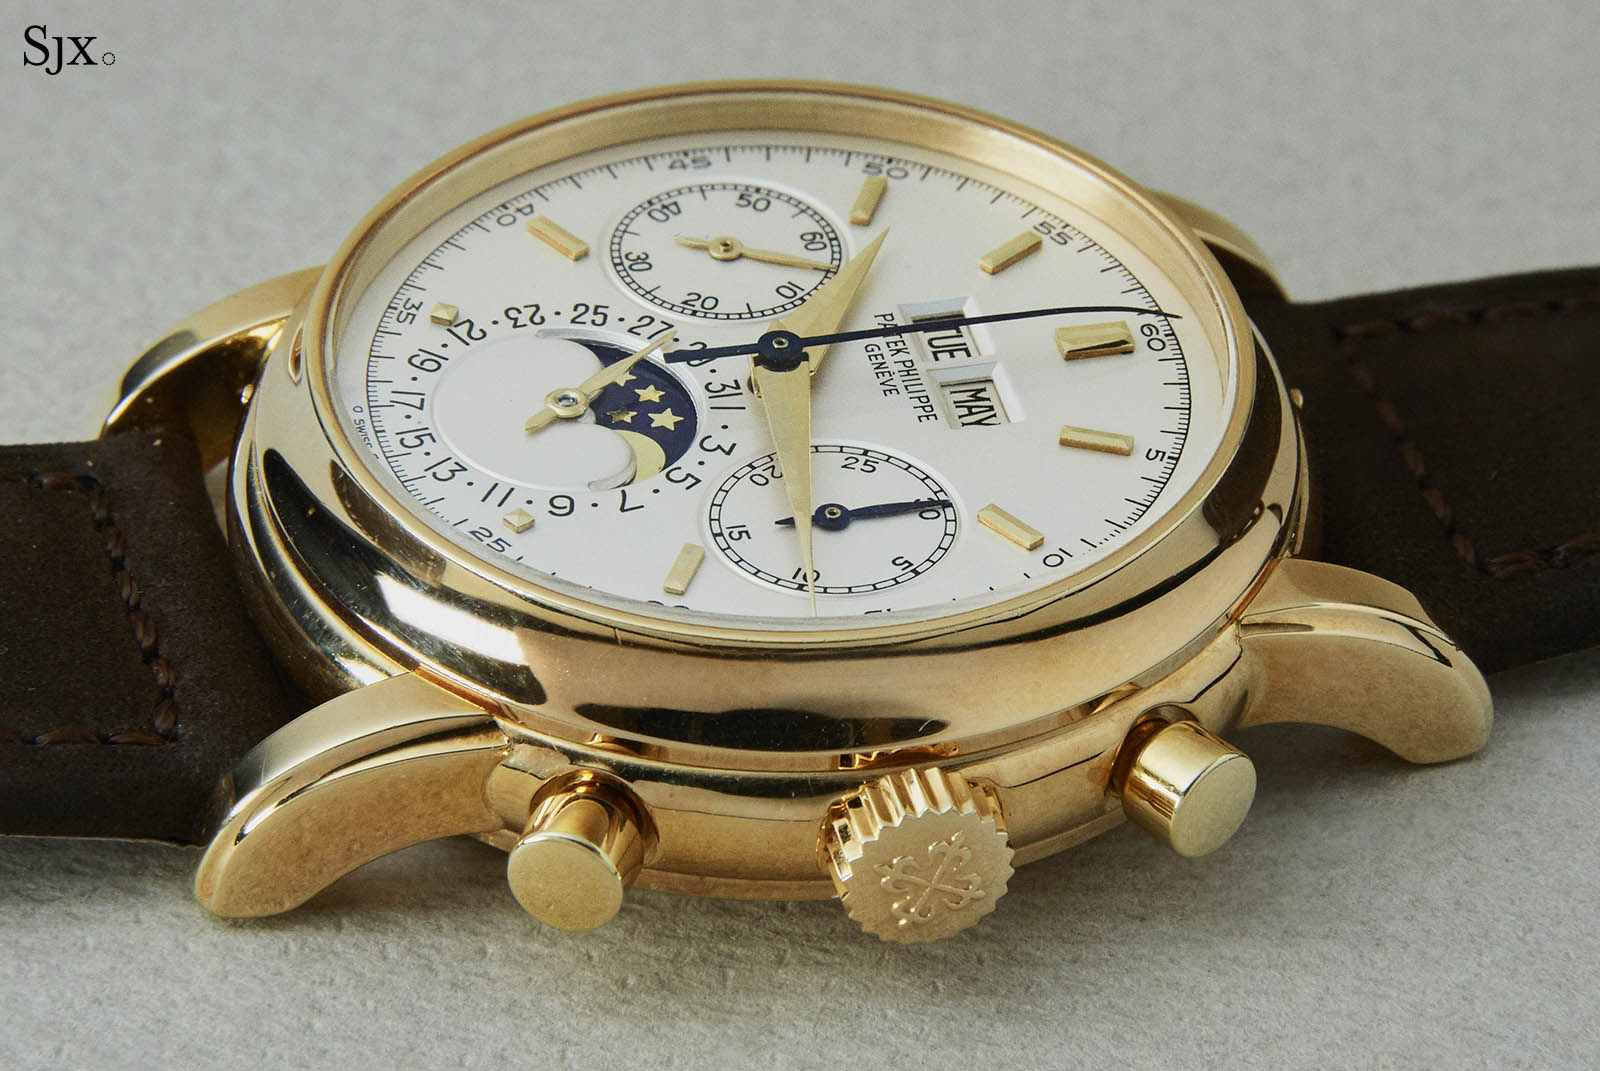 Patek Philippe ref. 2499 4th series 4